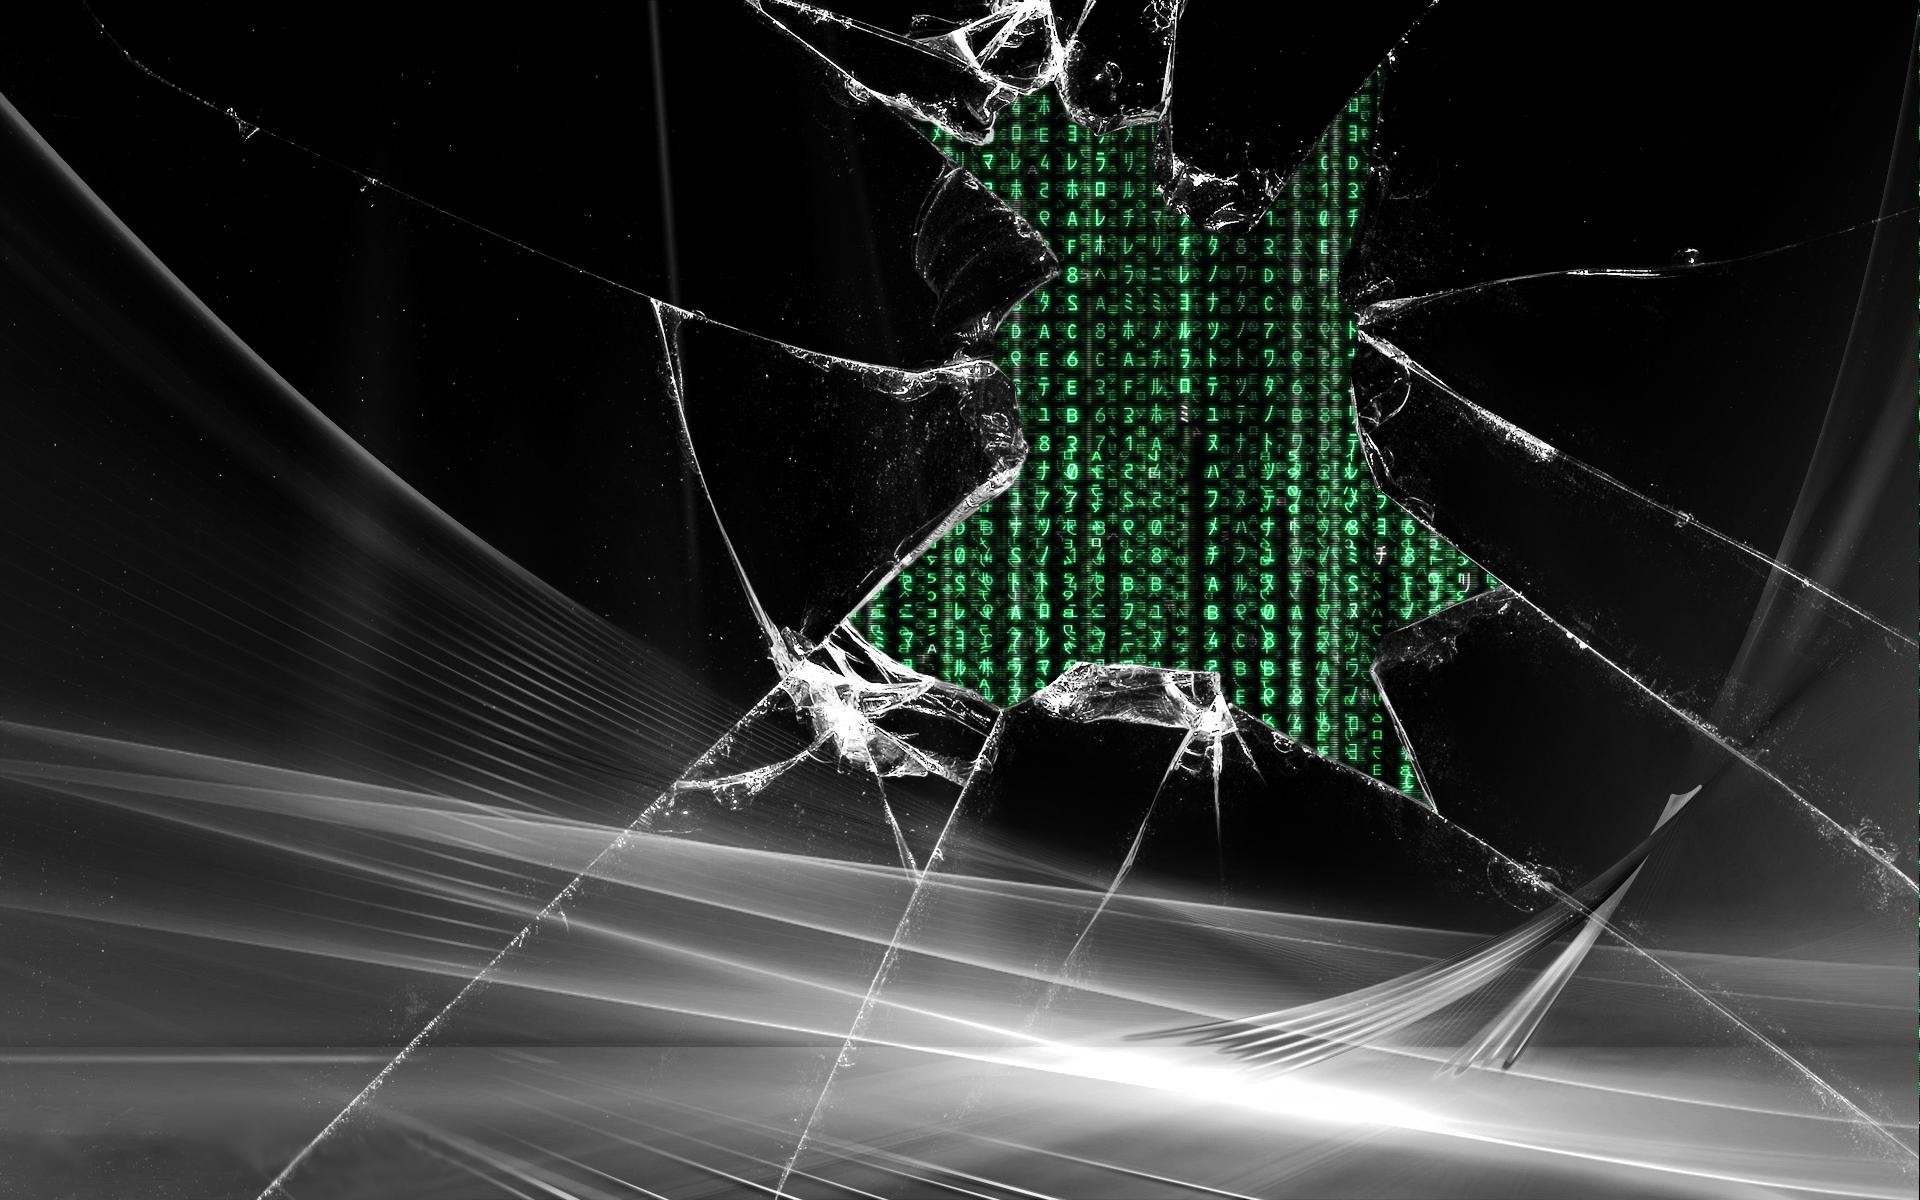 Cracked Screen Wallpaper Windows 10 (77+ Images